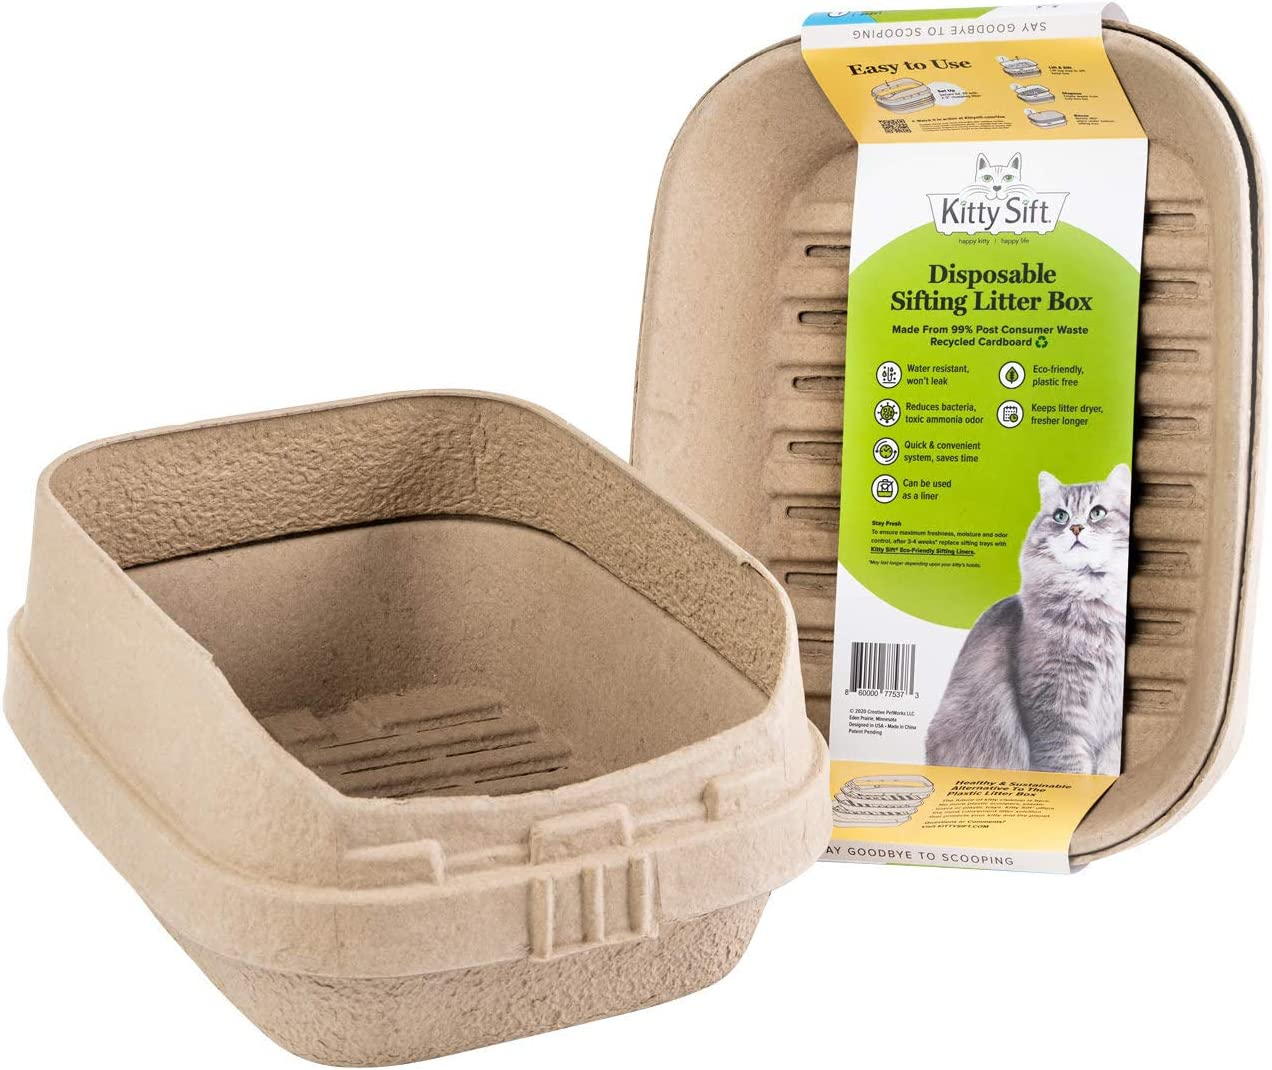 Kitty Sift Disposable Sifting Litter Box and Eco-Friendly Sifting Liners, Jumbo and Large Sizes